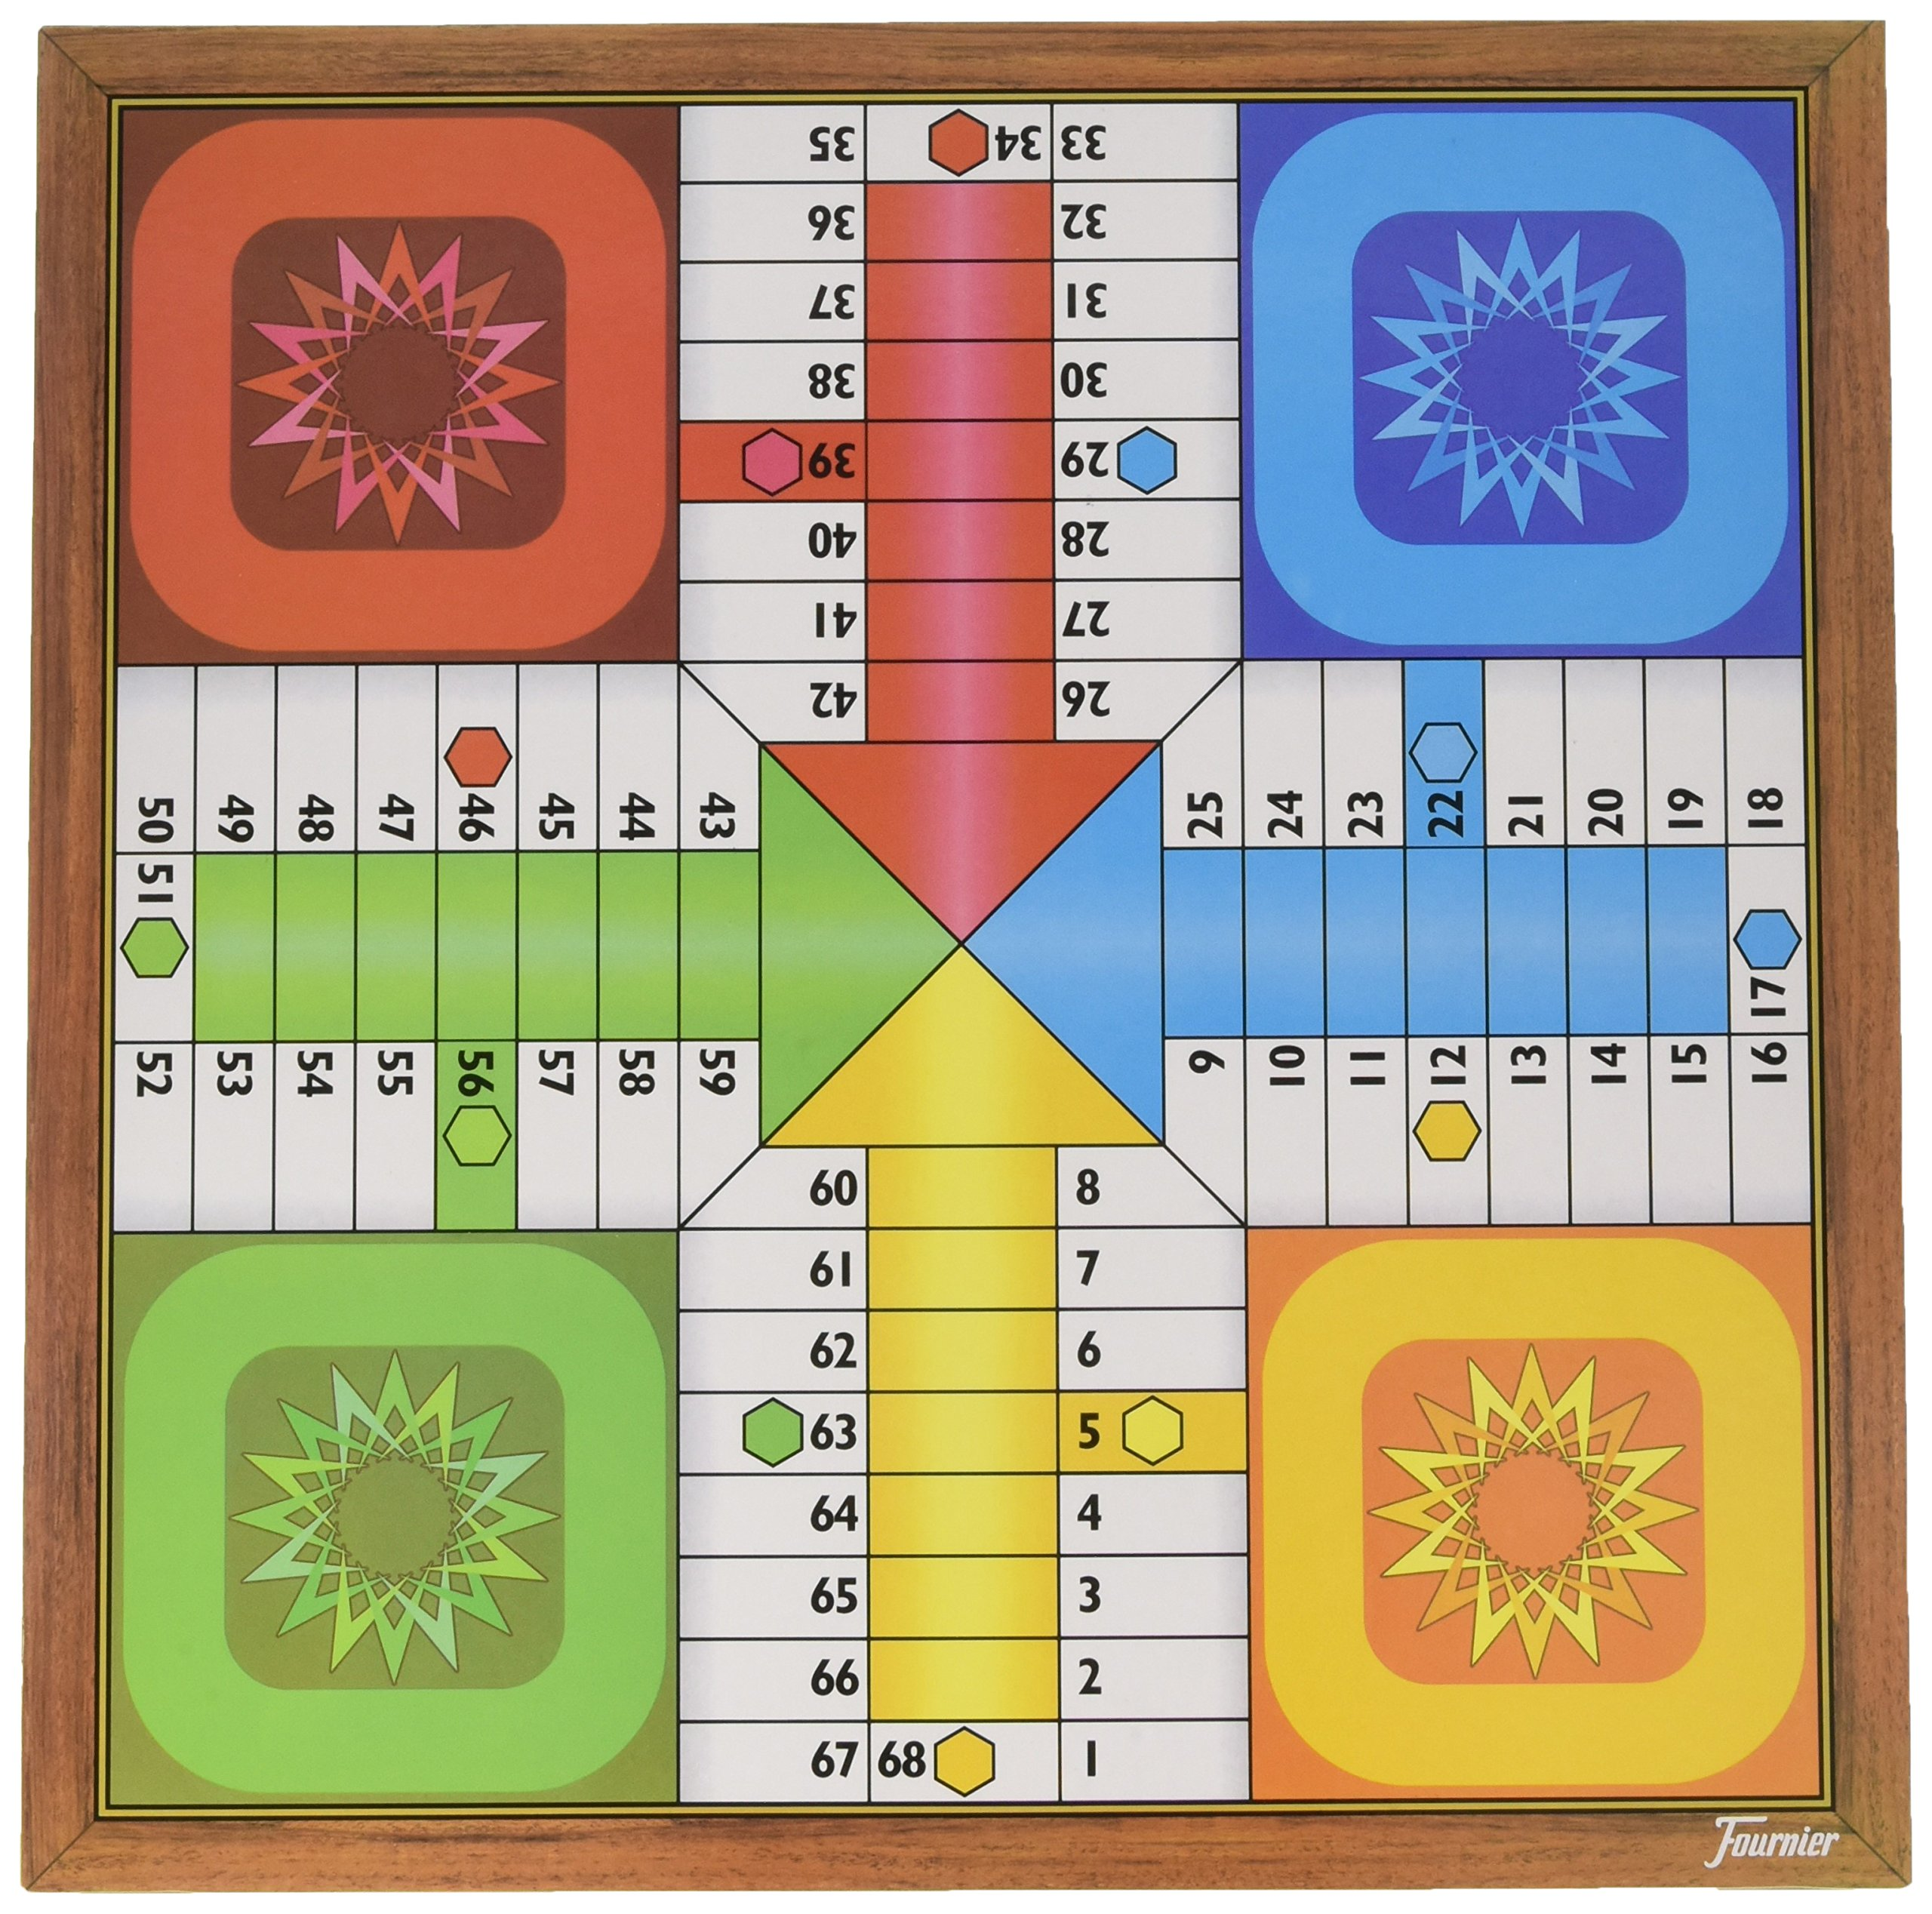 Comprar Fournier Parchis y Oca 33x33 cm Tablero, Multicolor, única (521111)